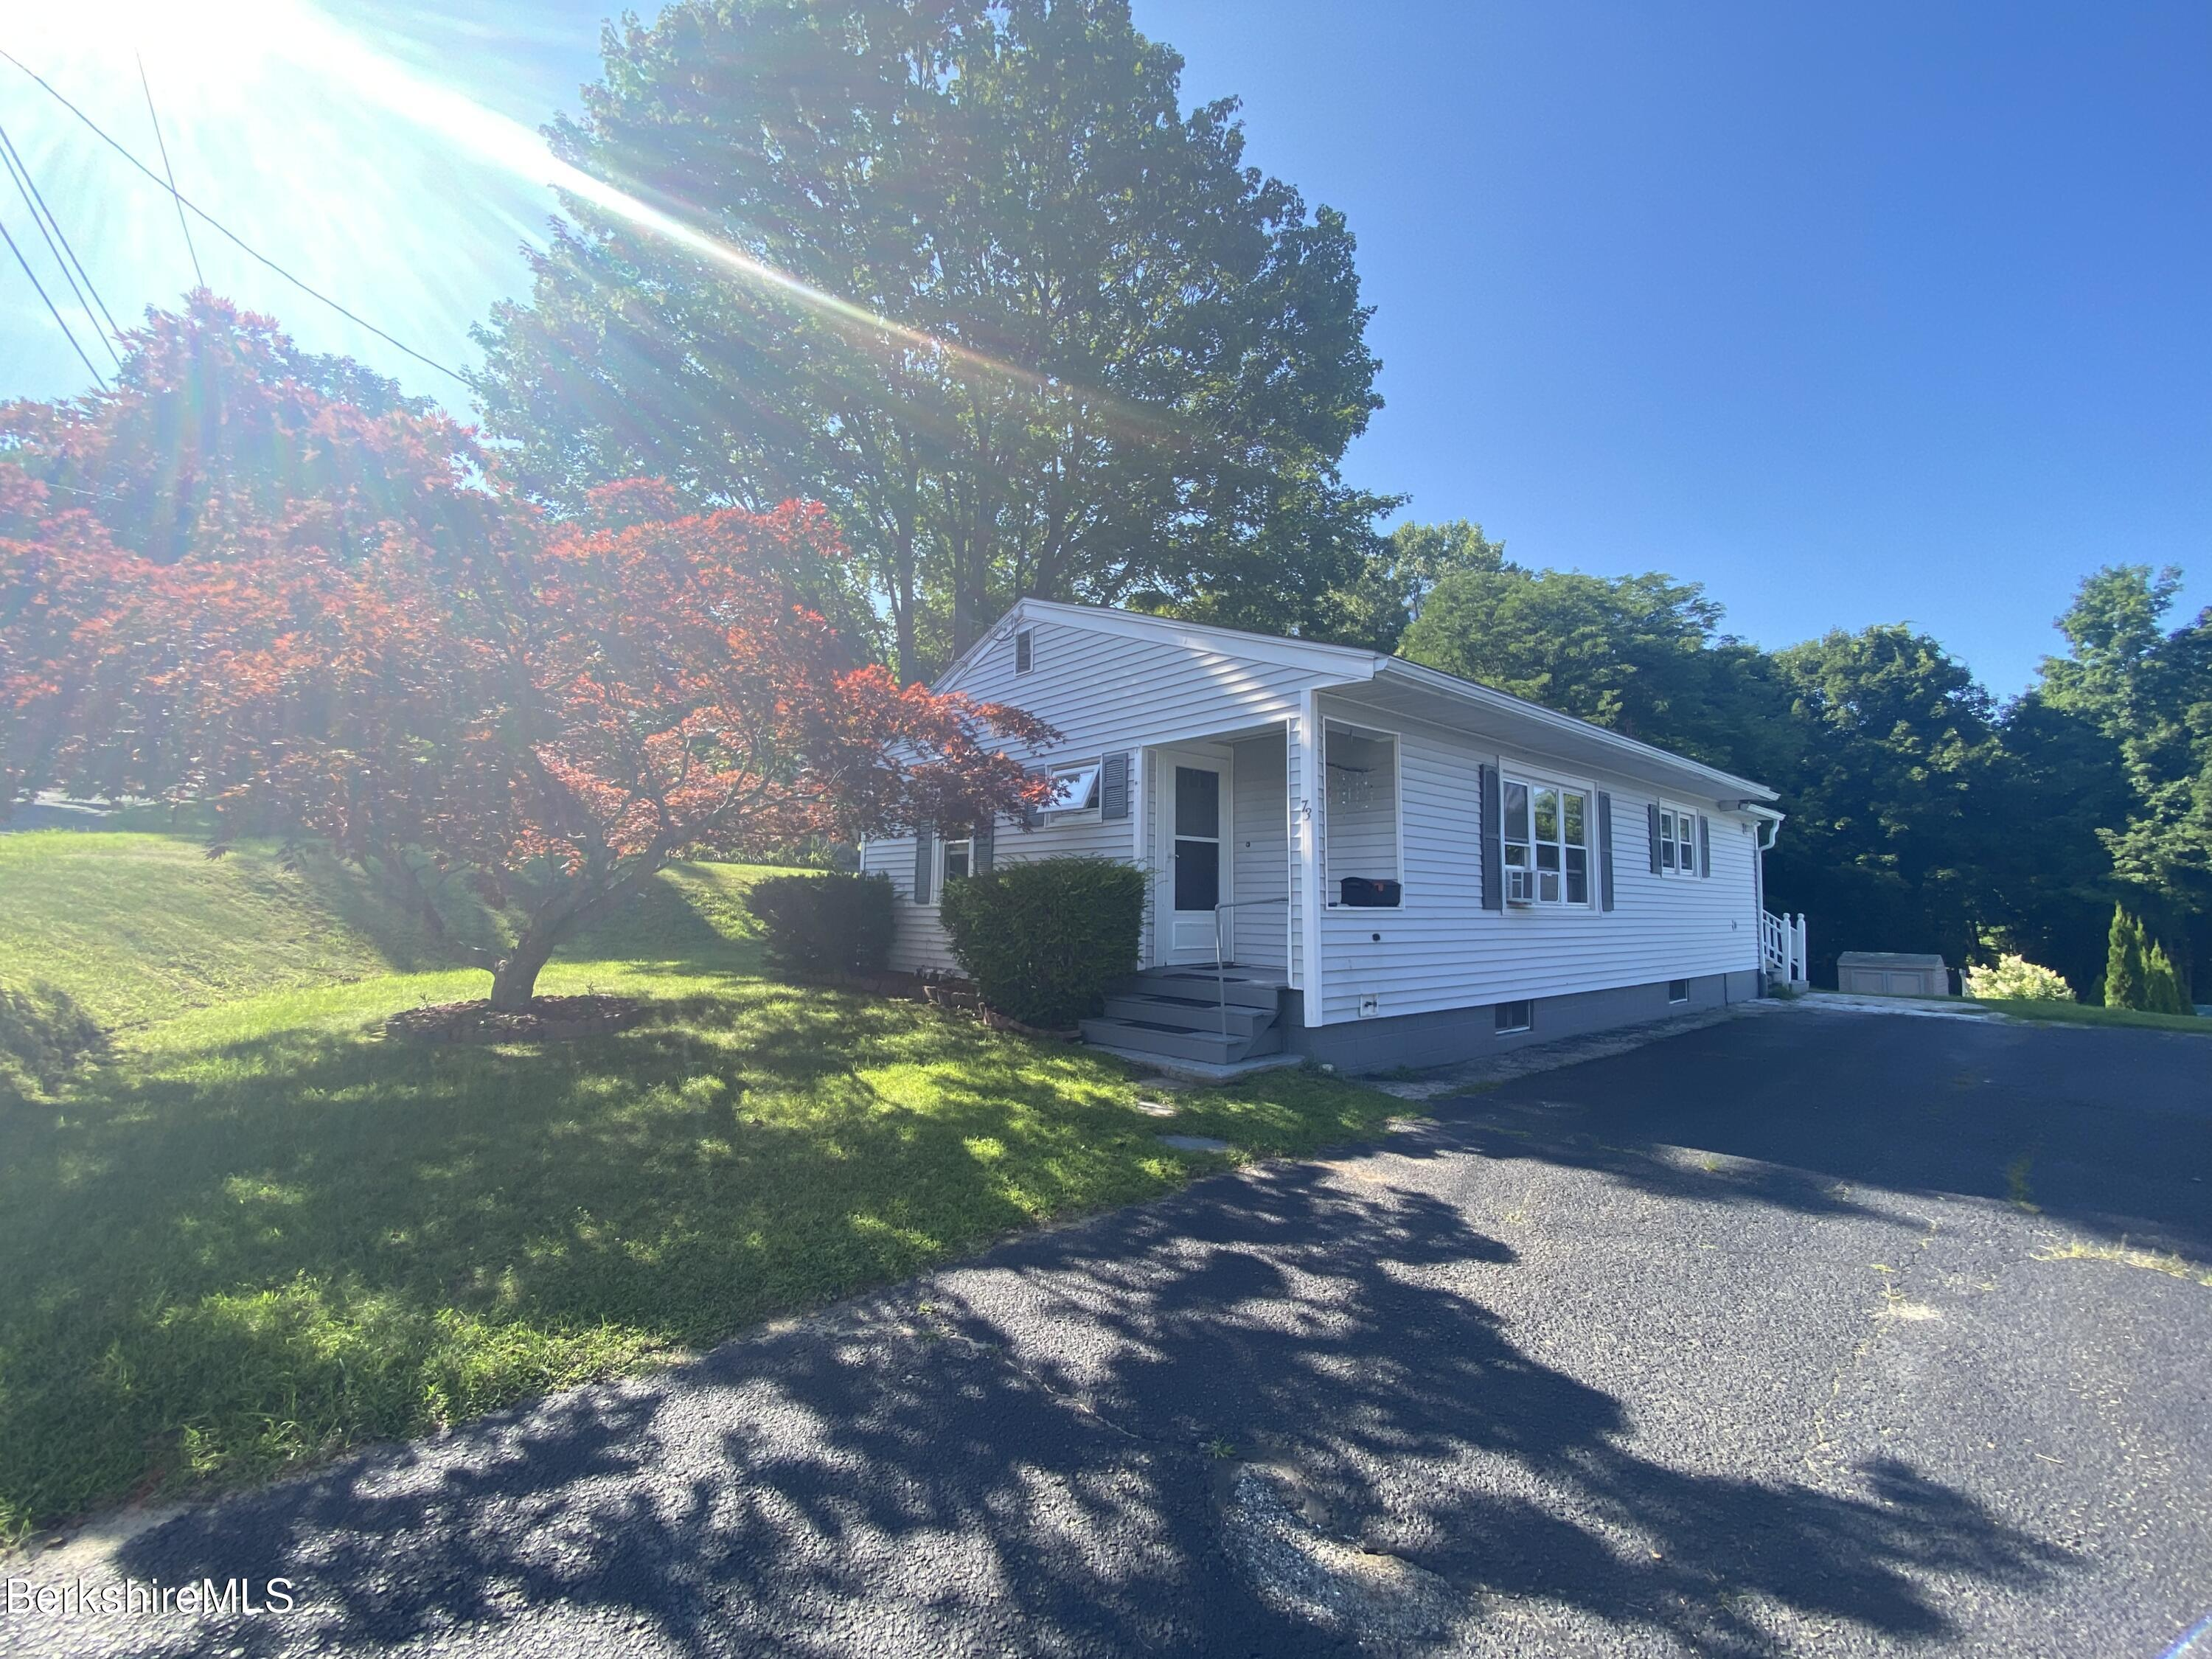 73 Melrose, Adams, Massachusetts 01220, 2 Bedrooms Bedrooms, 4 Rooms Rooms,1 BathroomBathrooms,Residential,For Sale,Melrose,235208